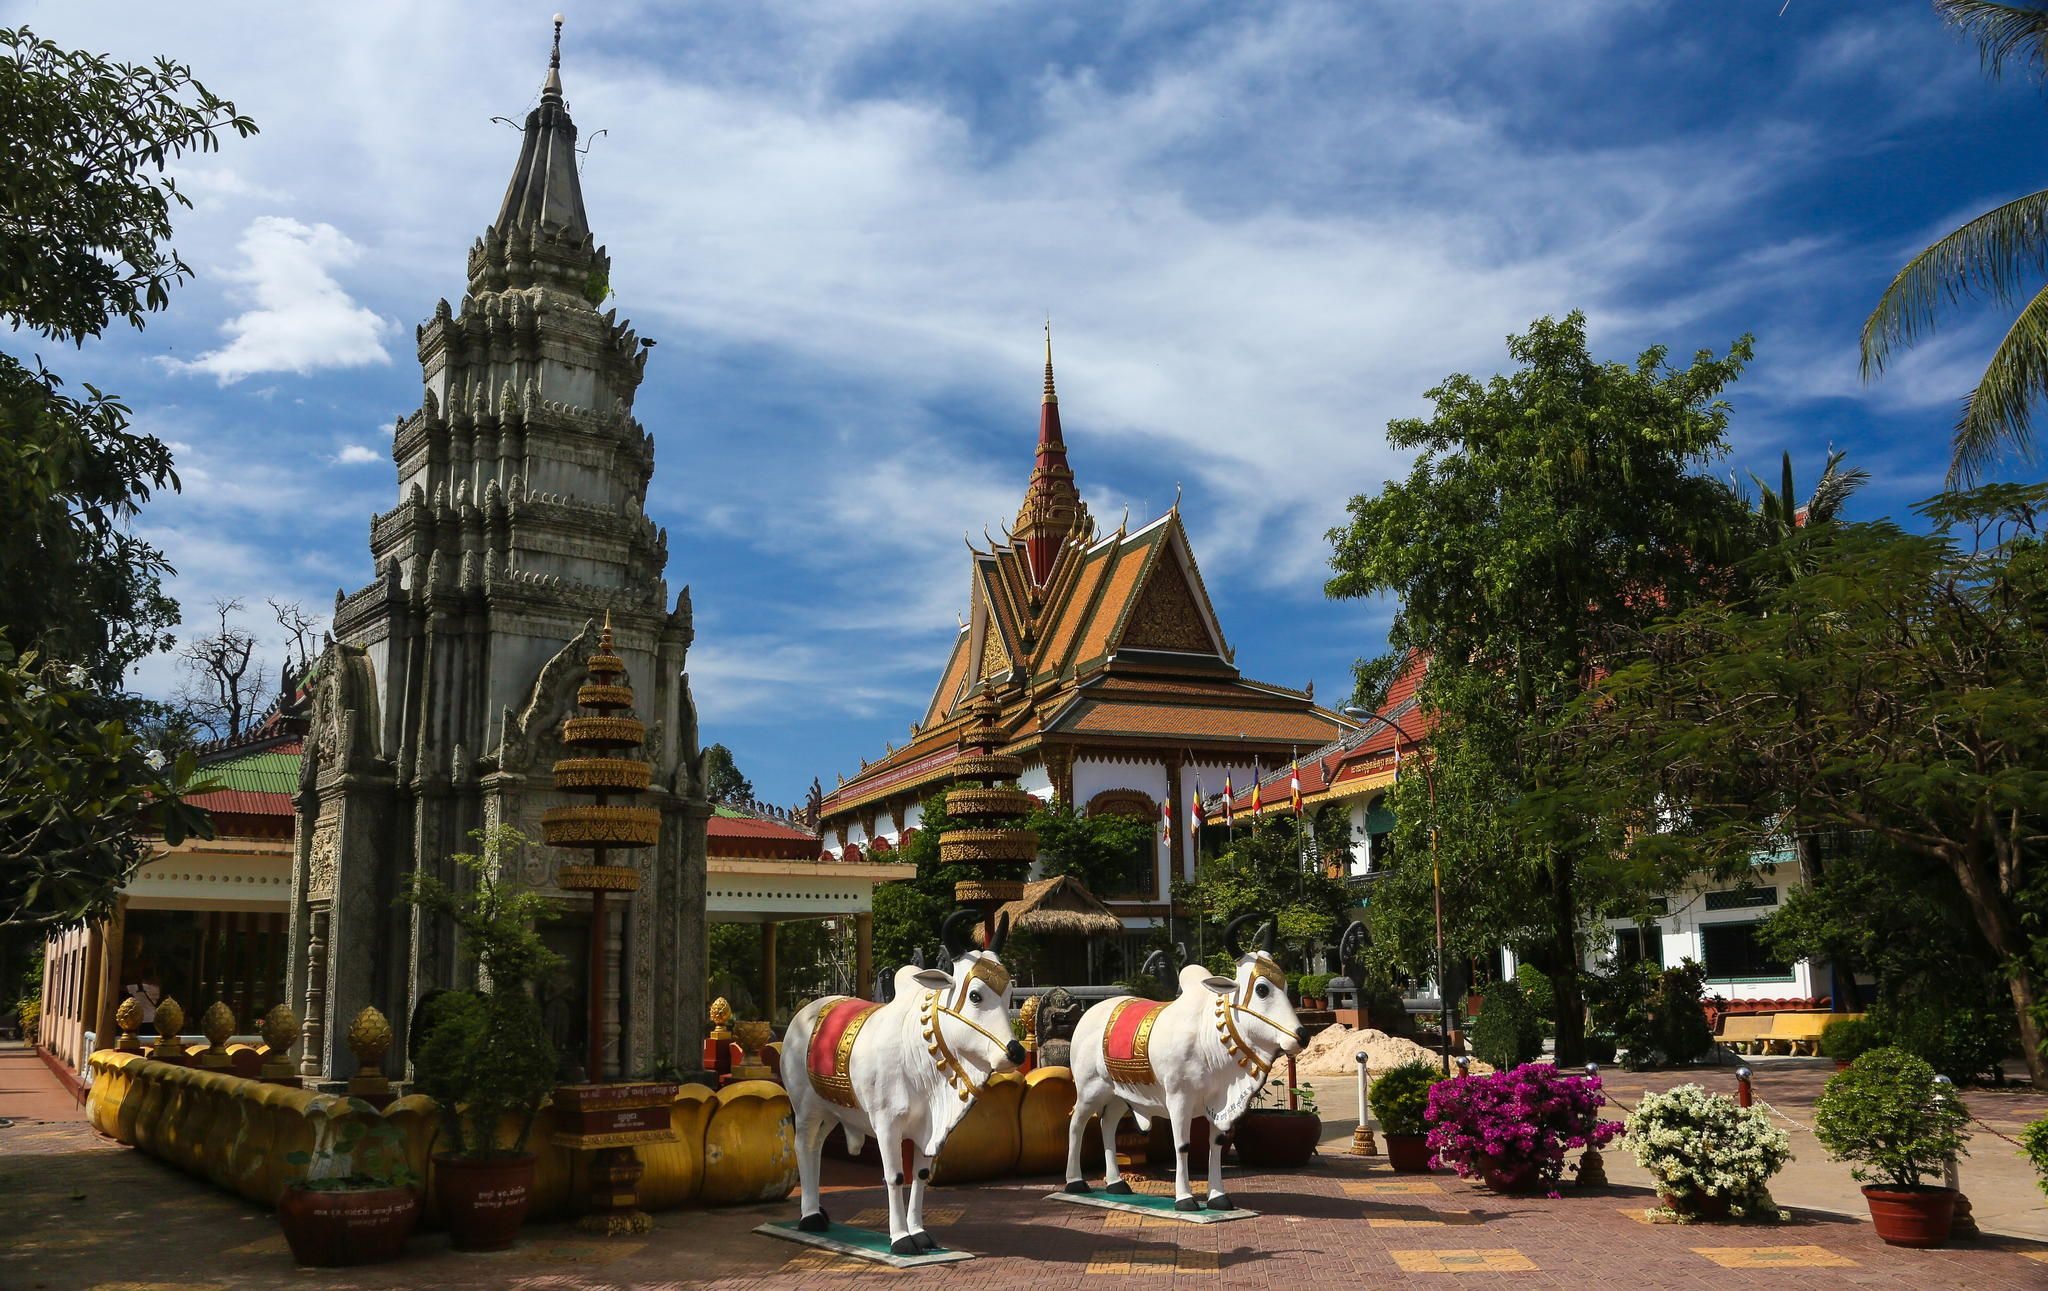 Tempel in Siam Reap by Walter Niederbauer on 500px